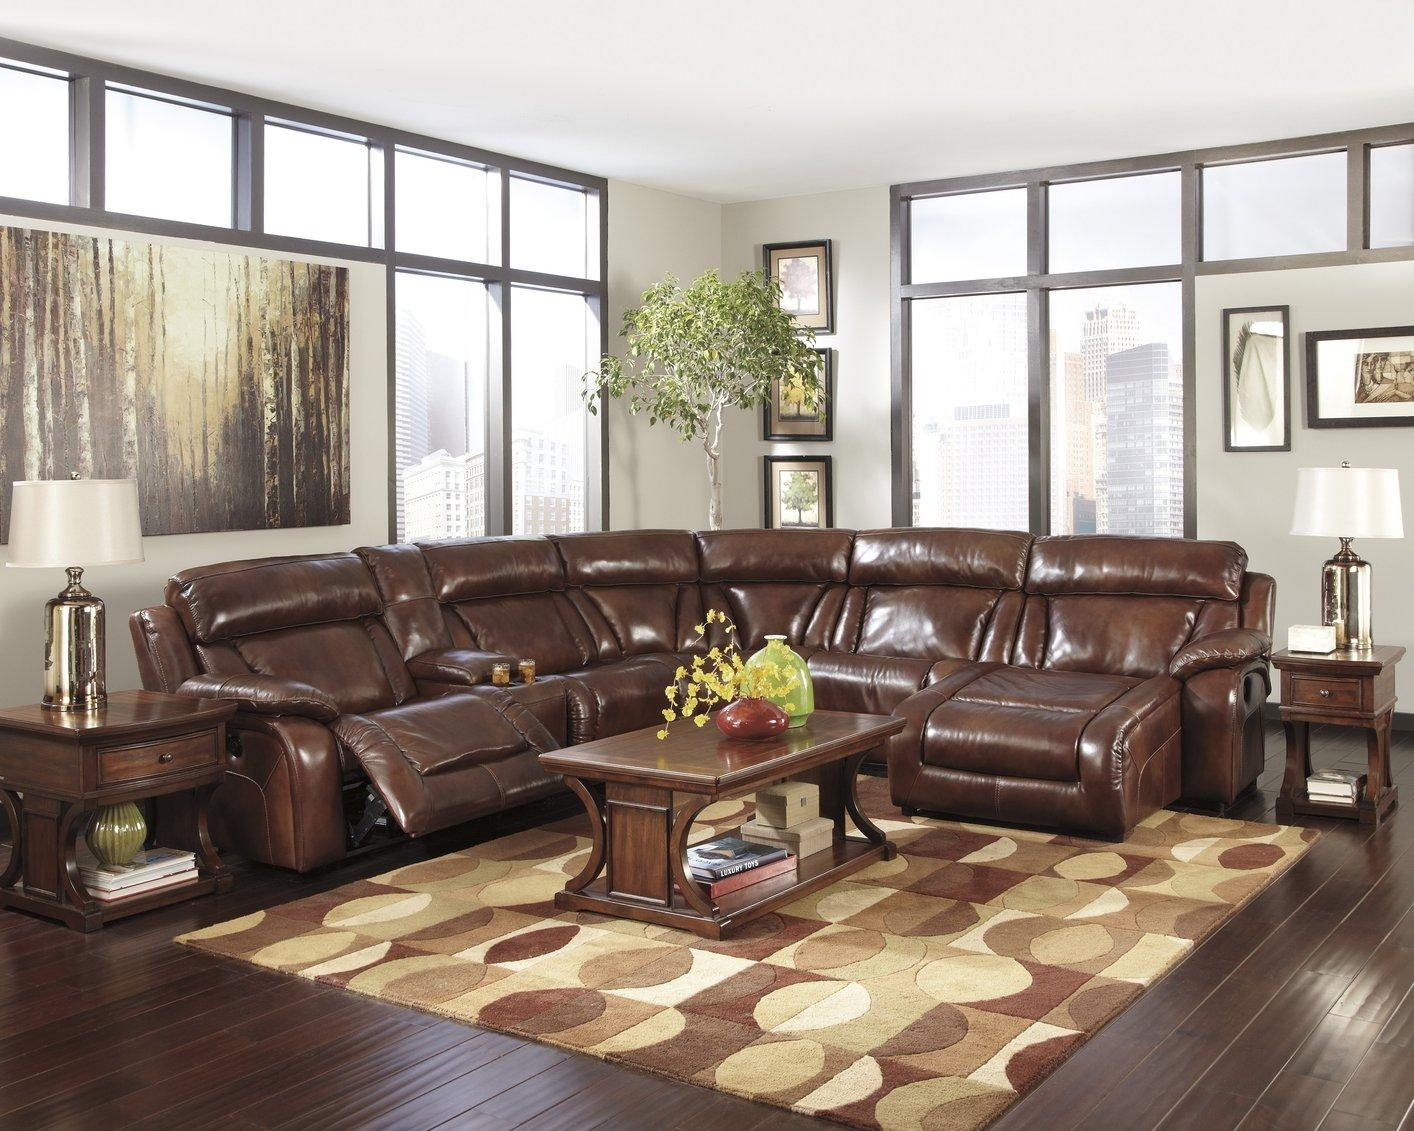 Sectional Sofa Clearance: The Best Way To Get High Quality Sofa In Throughout High End Leather Sectional Sofa (Image 14 of 15)